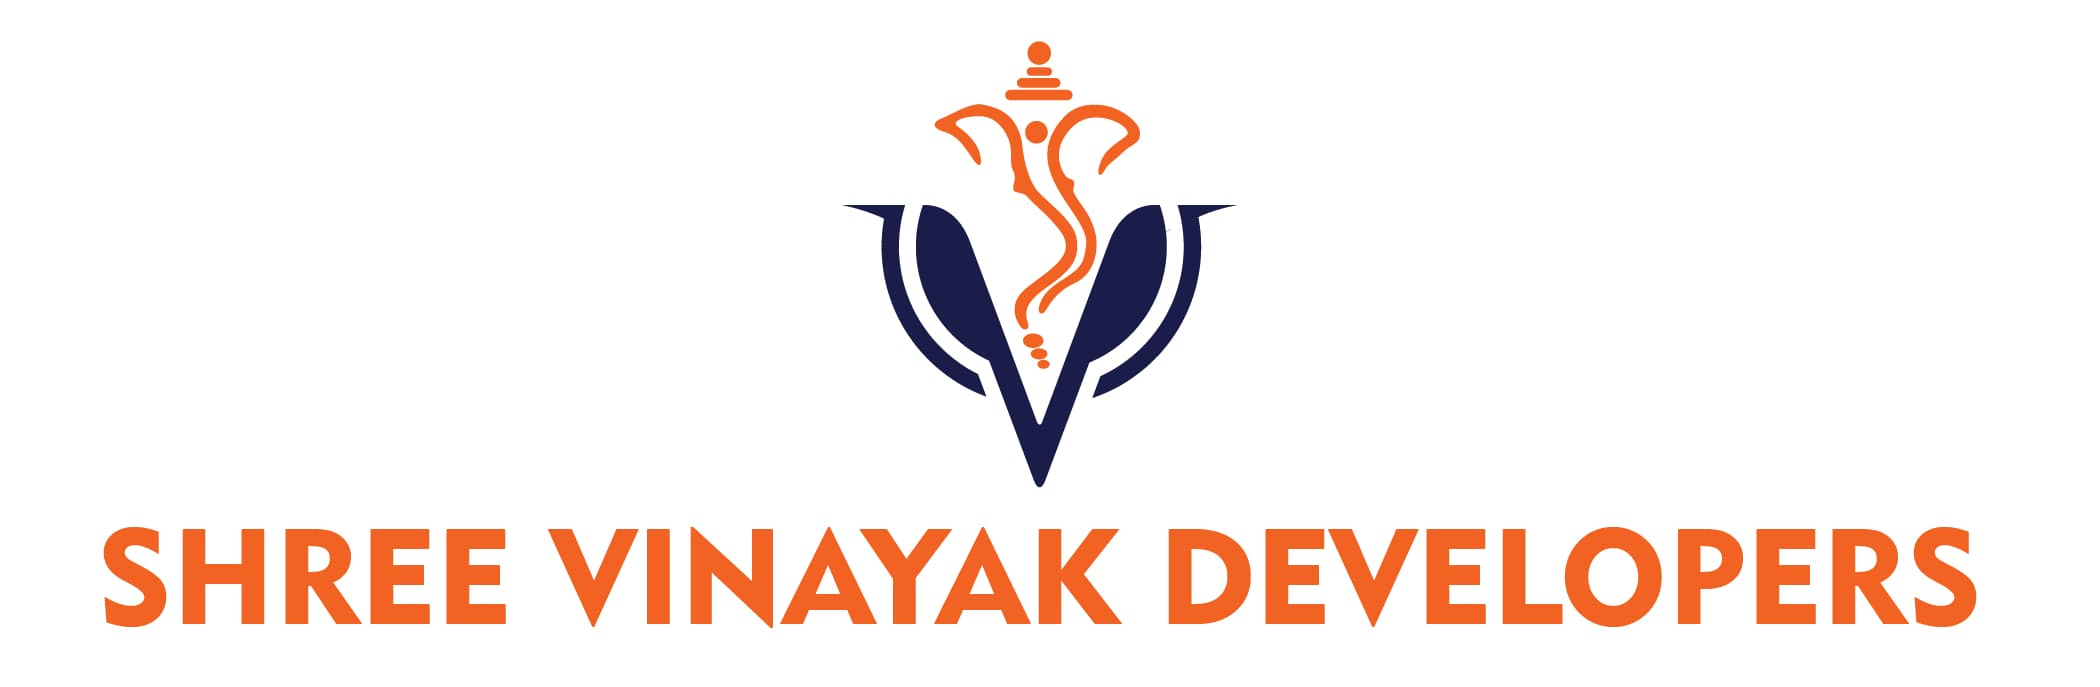 Shree Vinayak Developers